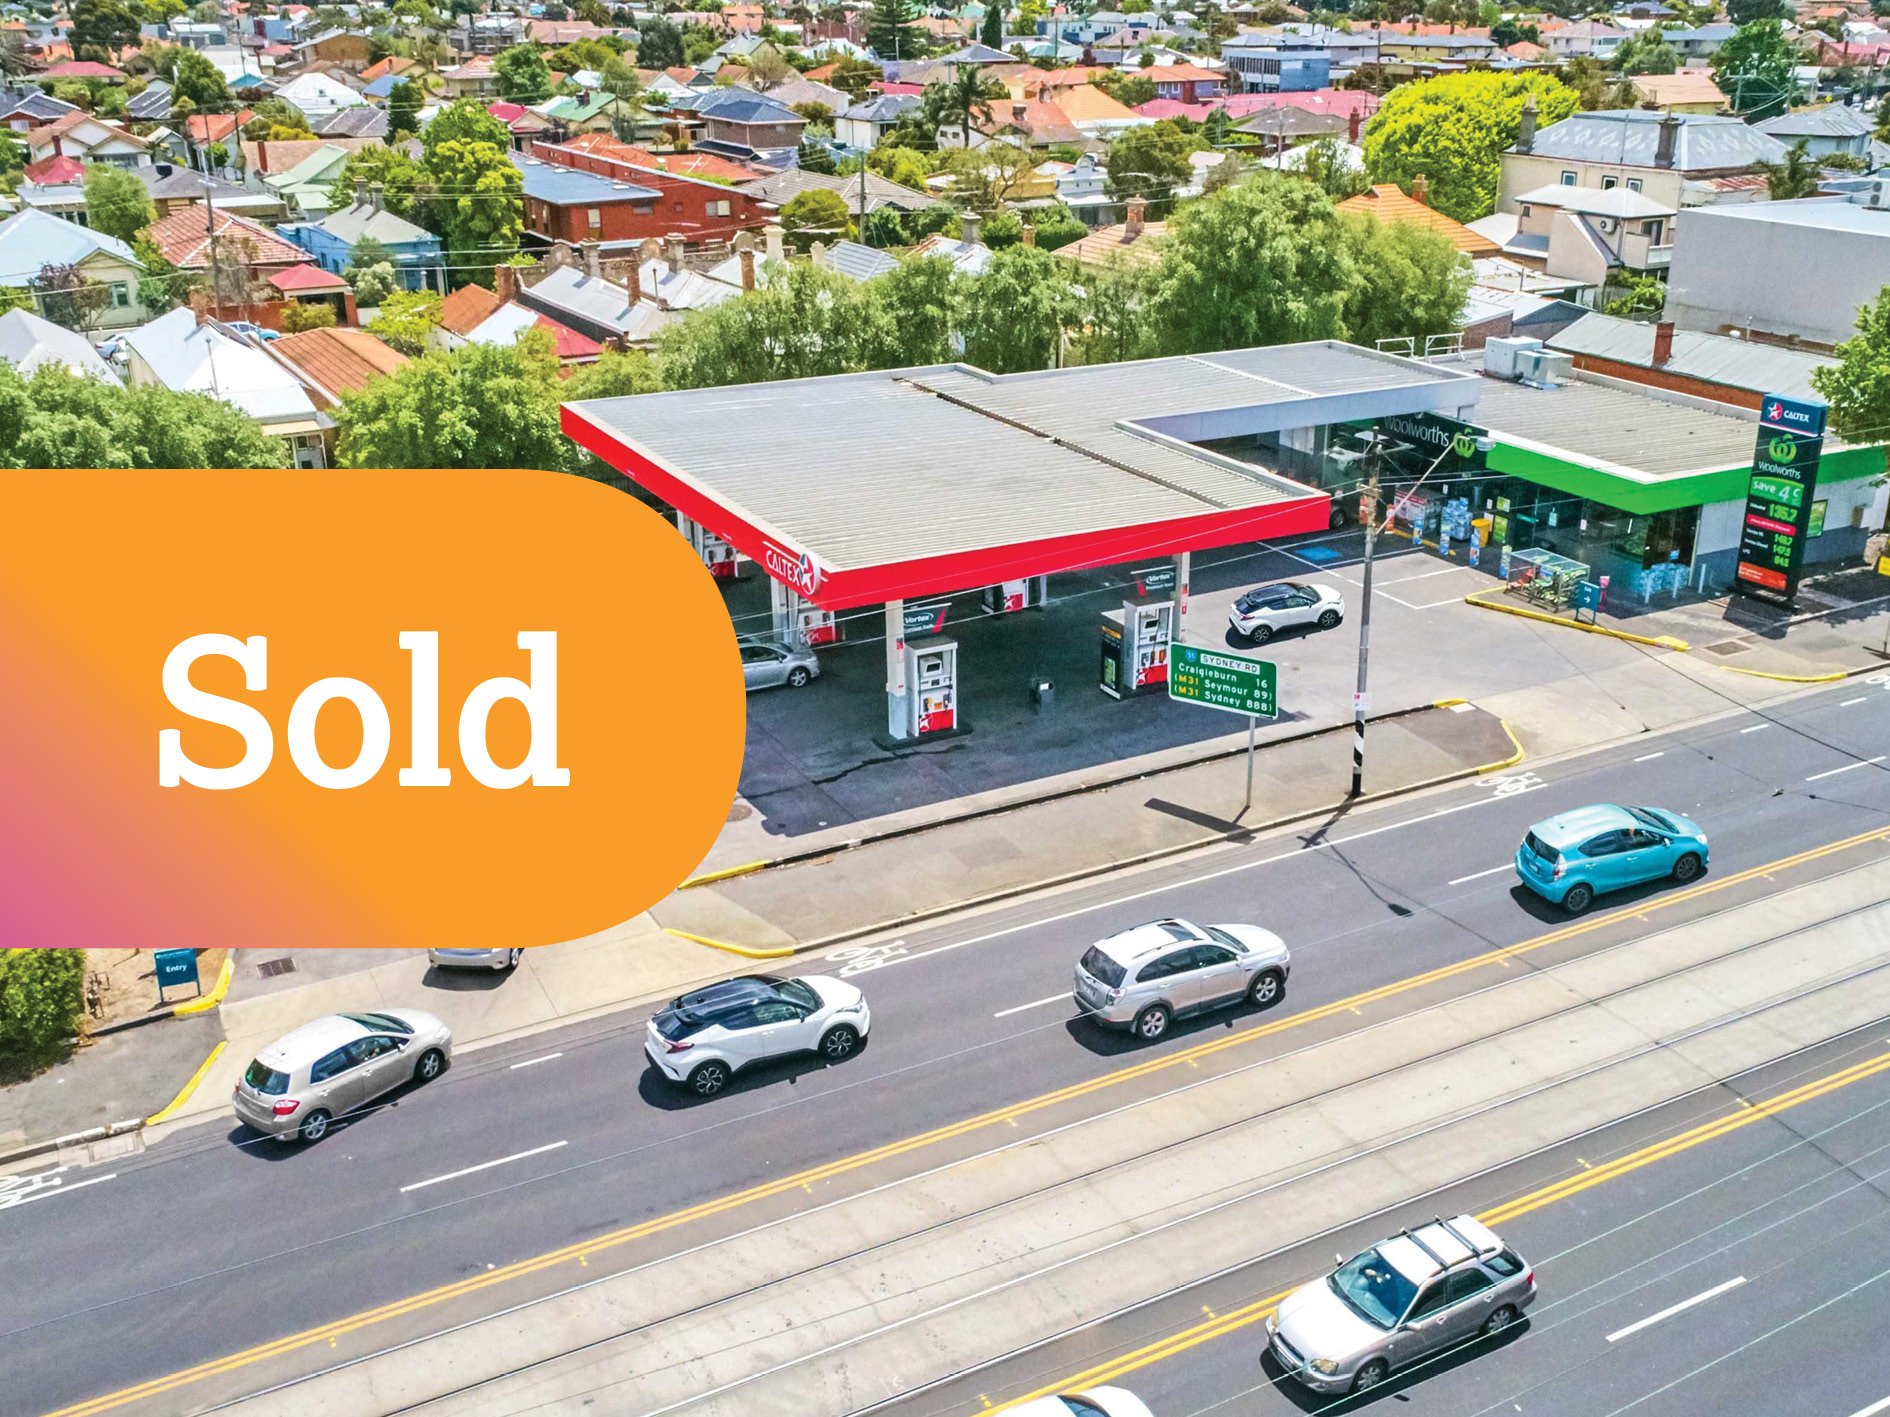 Blue-Chip Woolworths Petrol Freehold Investment with a Big Future